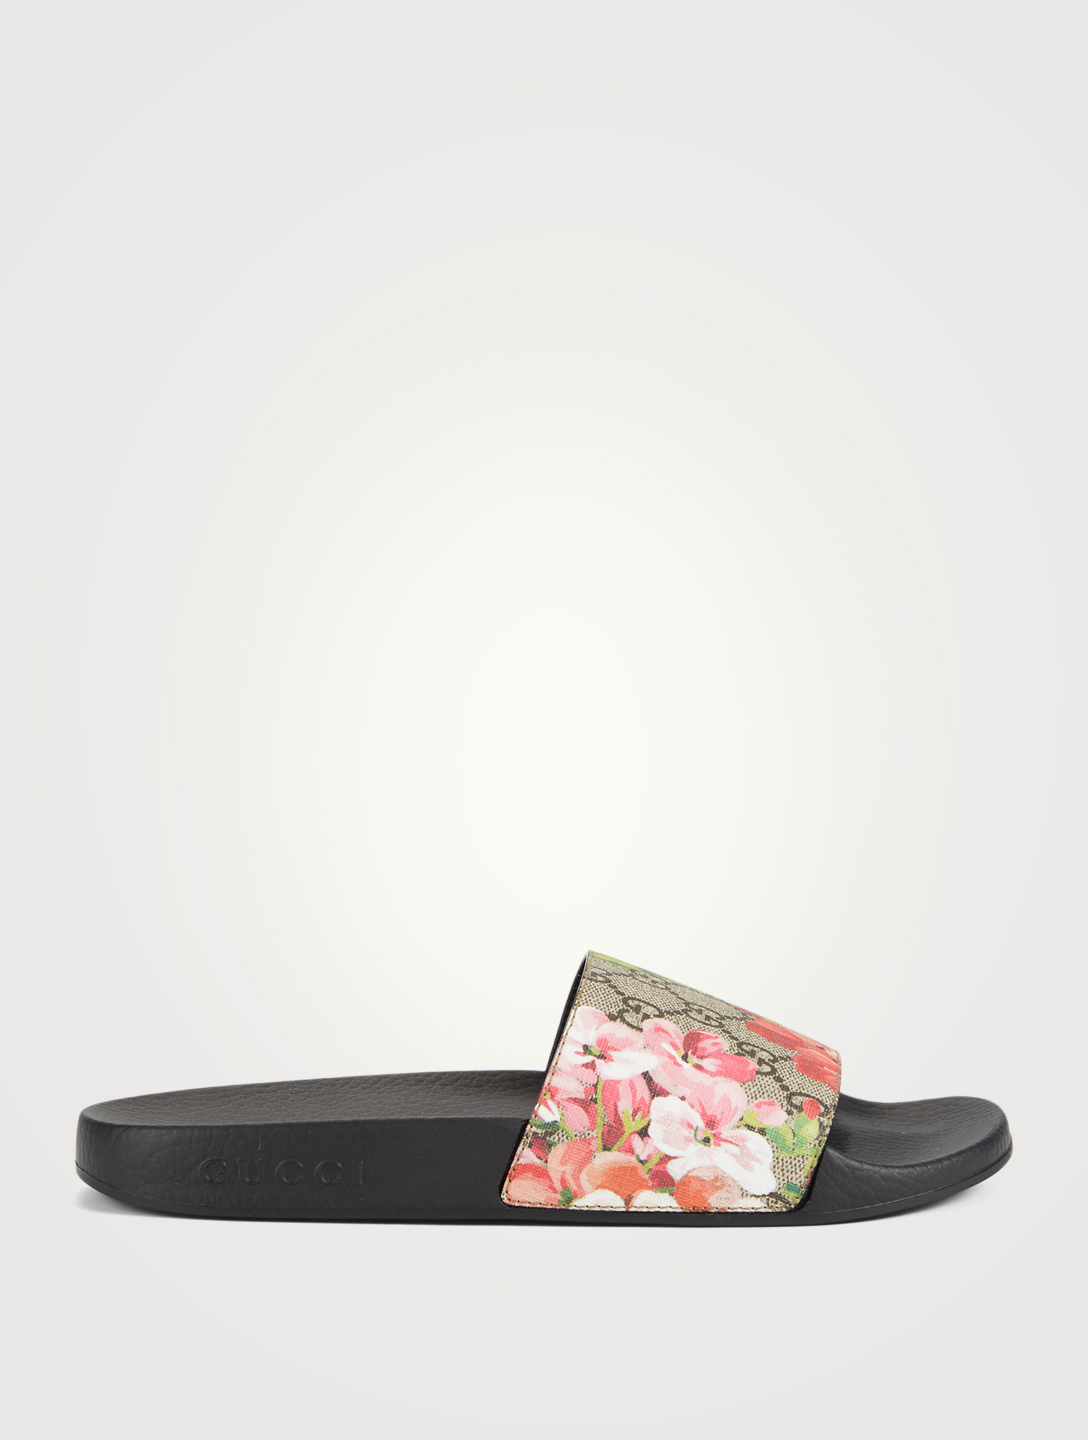 2afaa7796bb0 GUCCI GG Blooms Supreme Slide Sandals